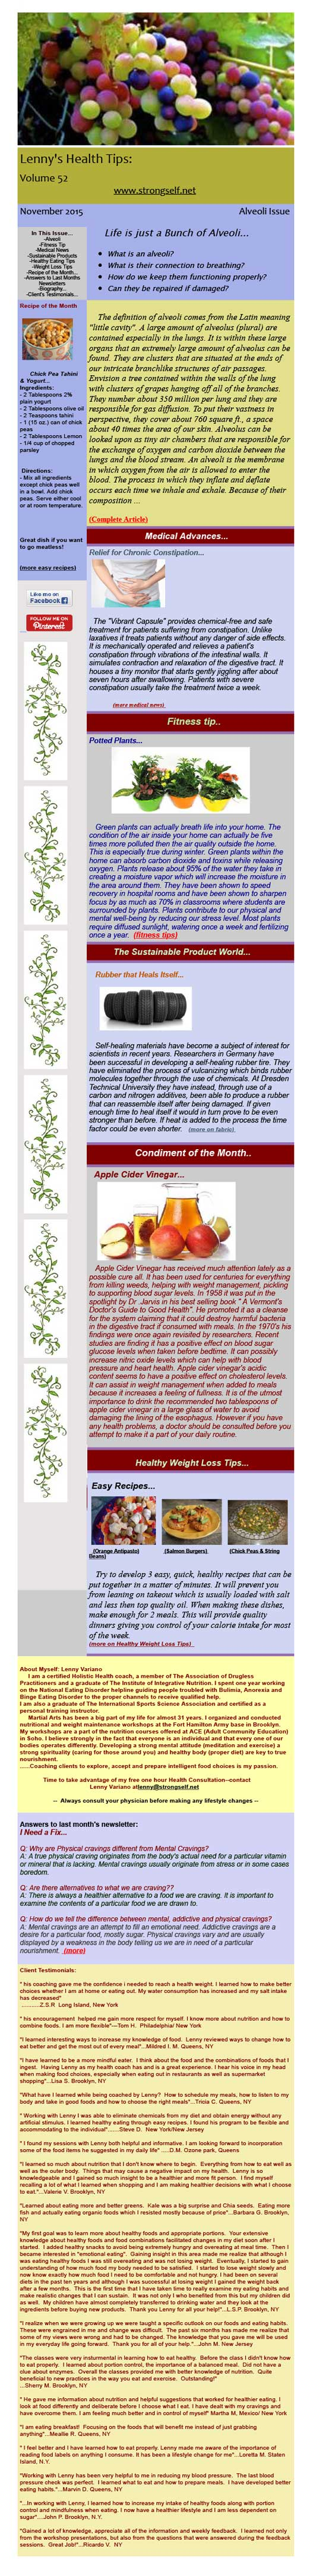 November 2015 Healthy Tips Newsletter from certified Holistic Health Counselor Lenny Variano